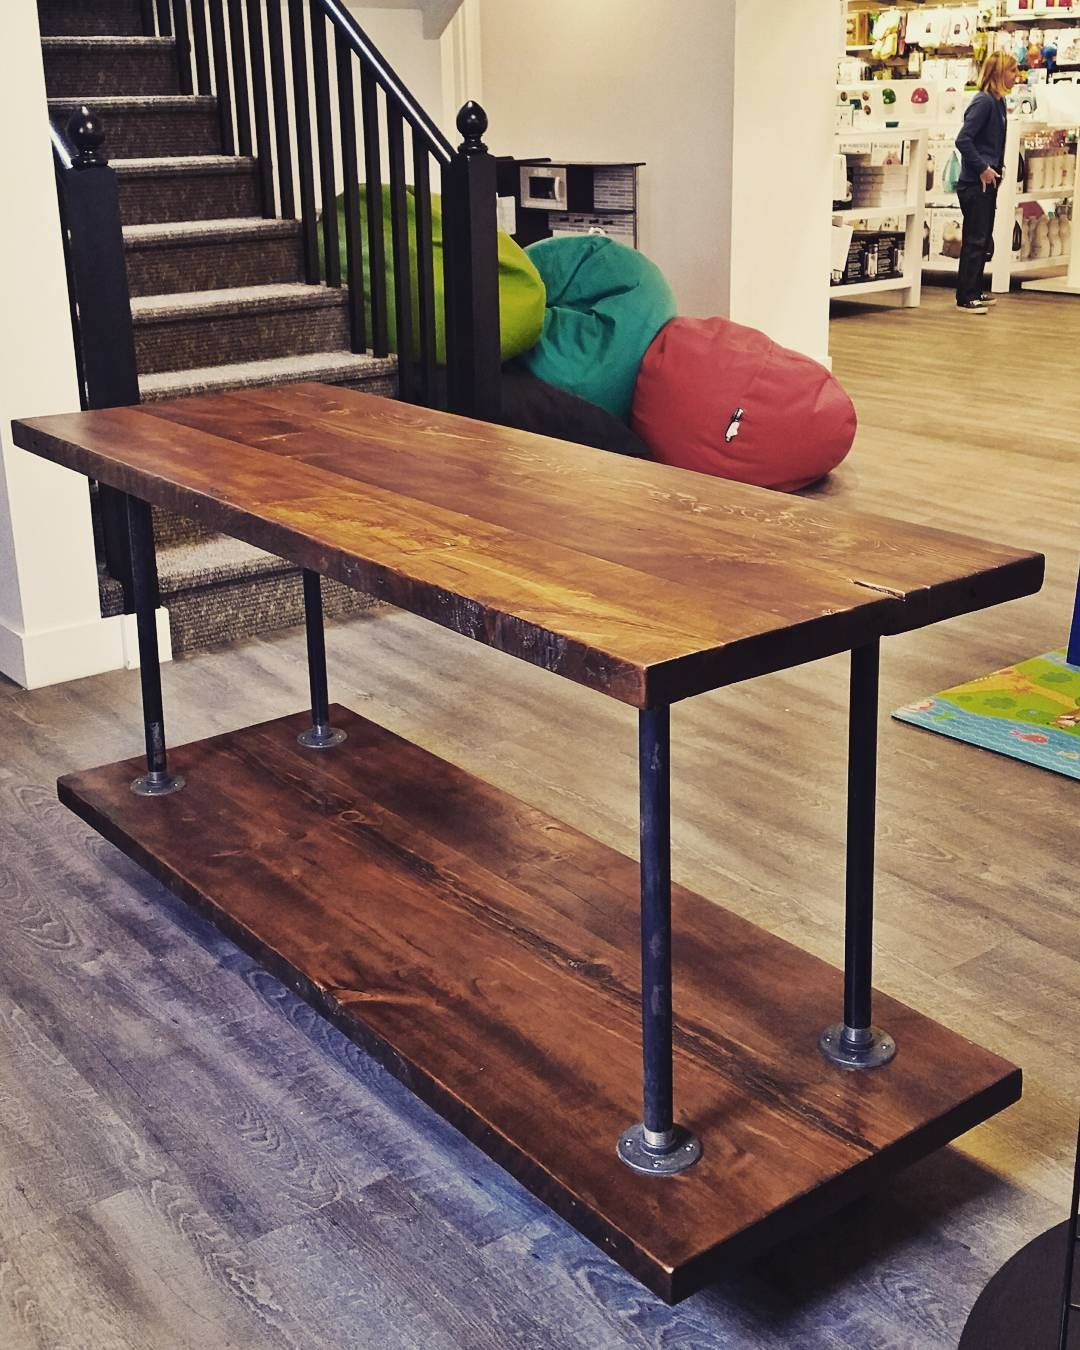 2 Tier Display Table OR Moveable Work Space Storage For The Shop